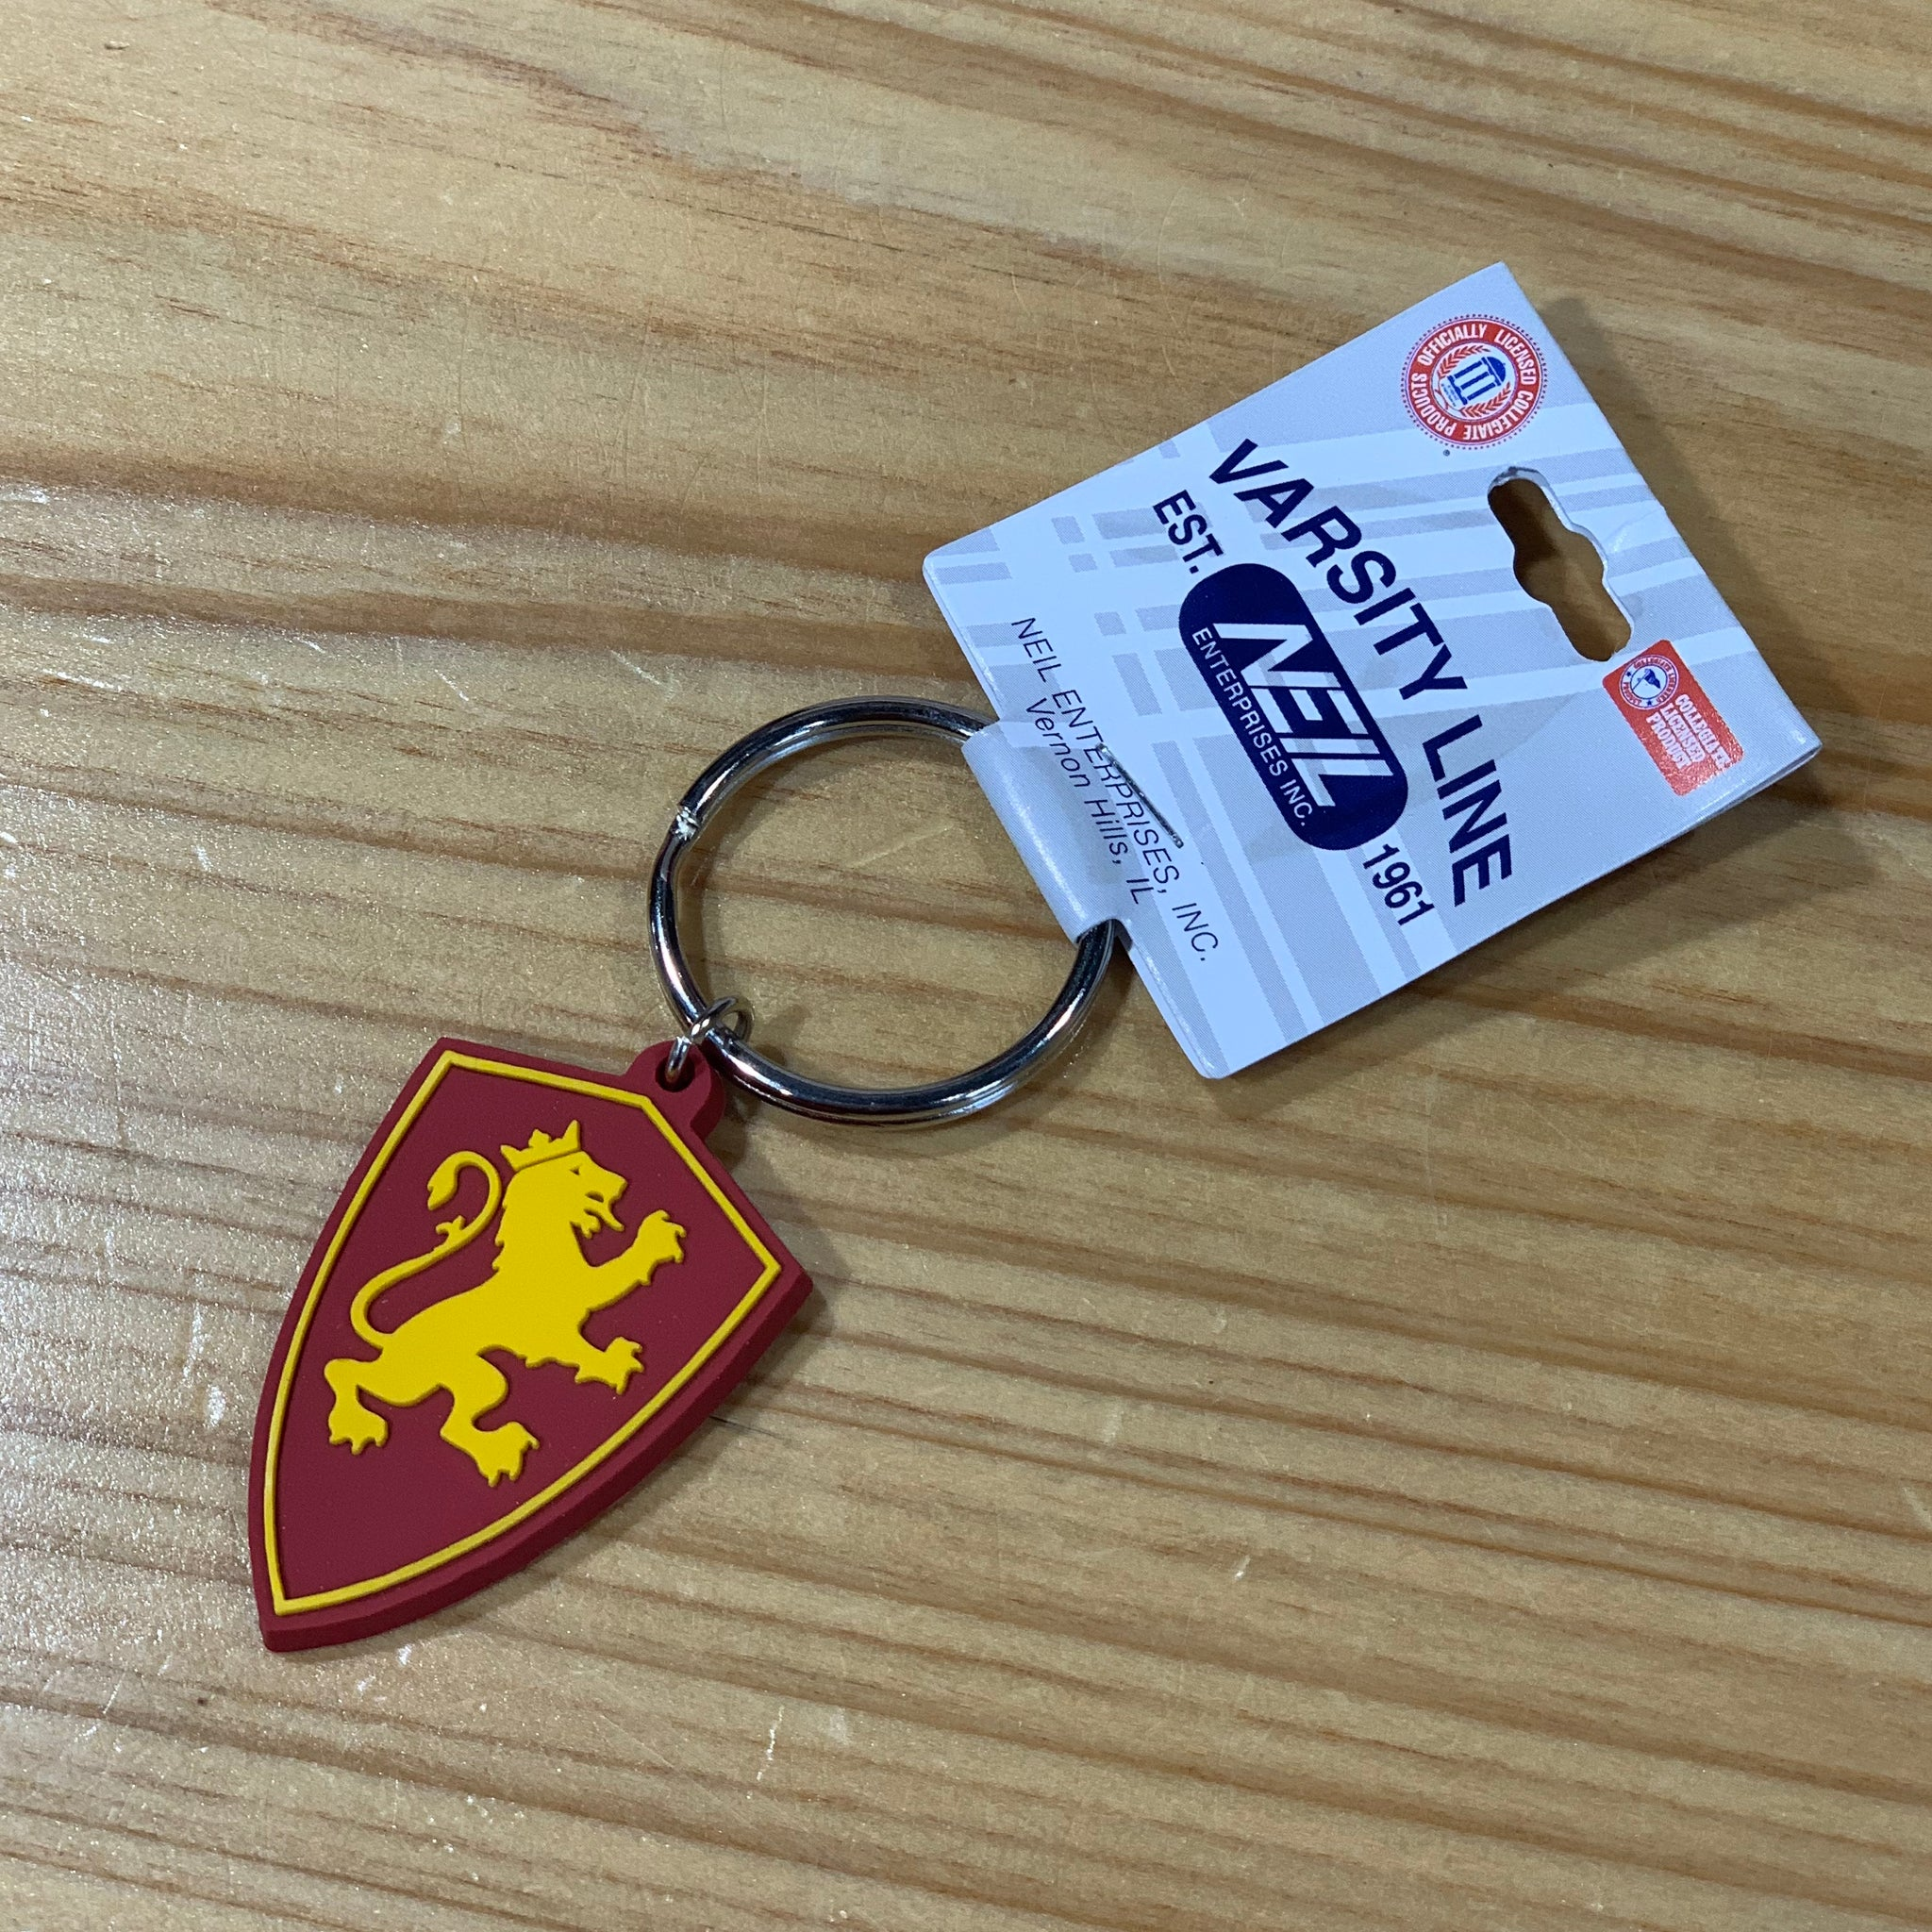 Plastic Flagler shield key chain